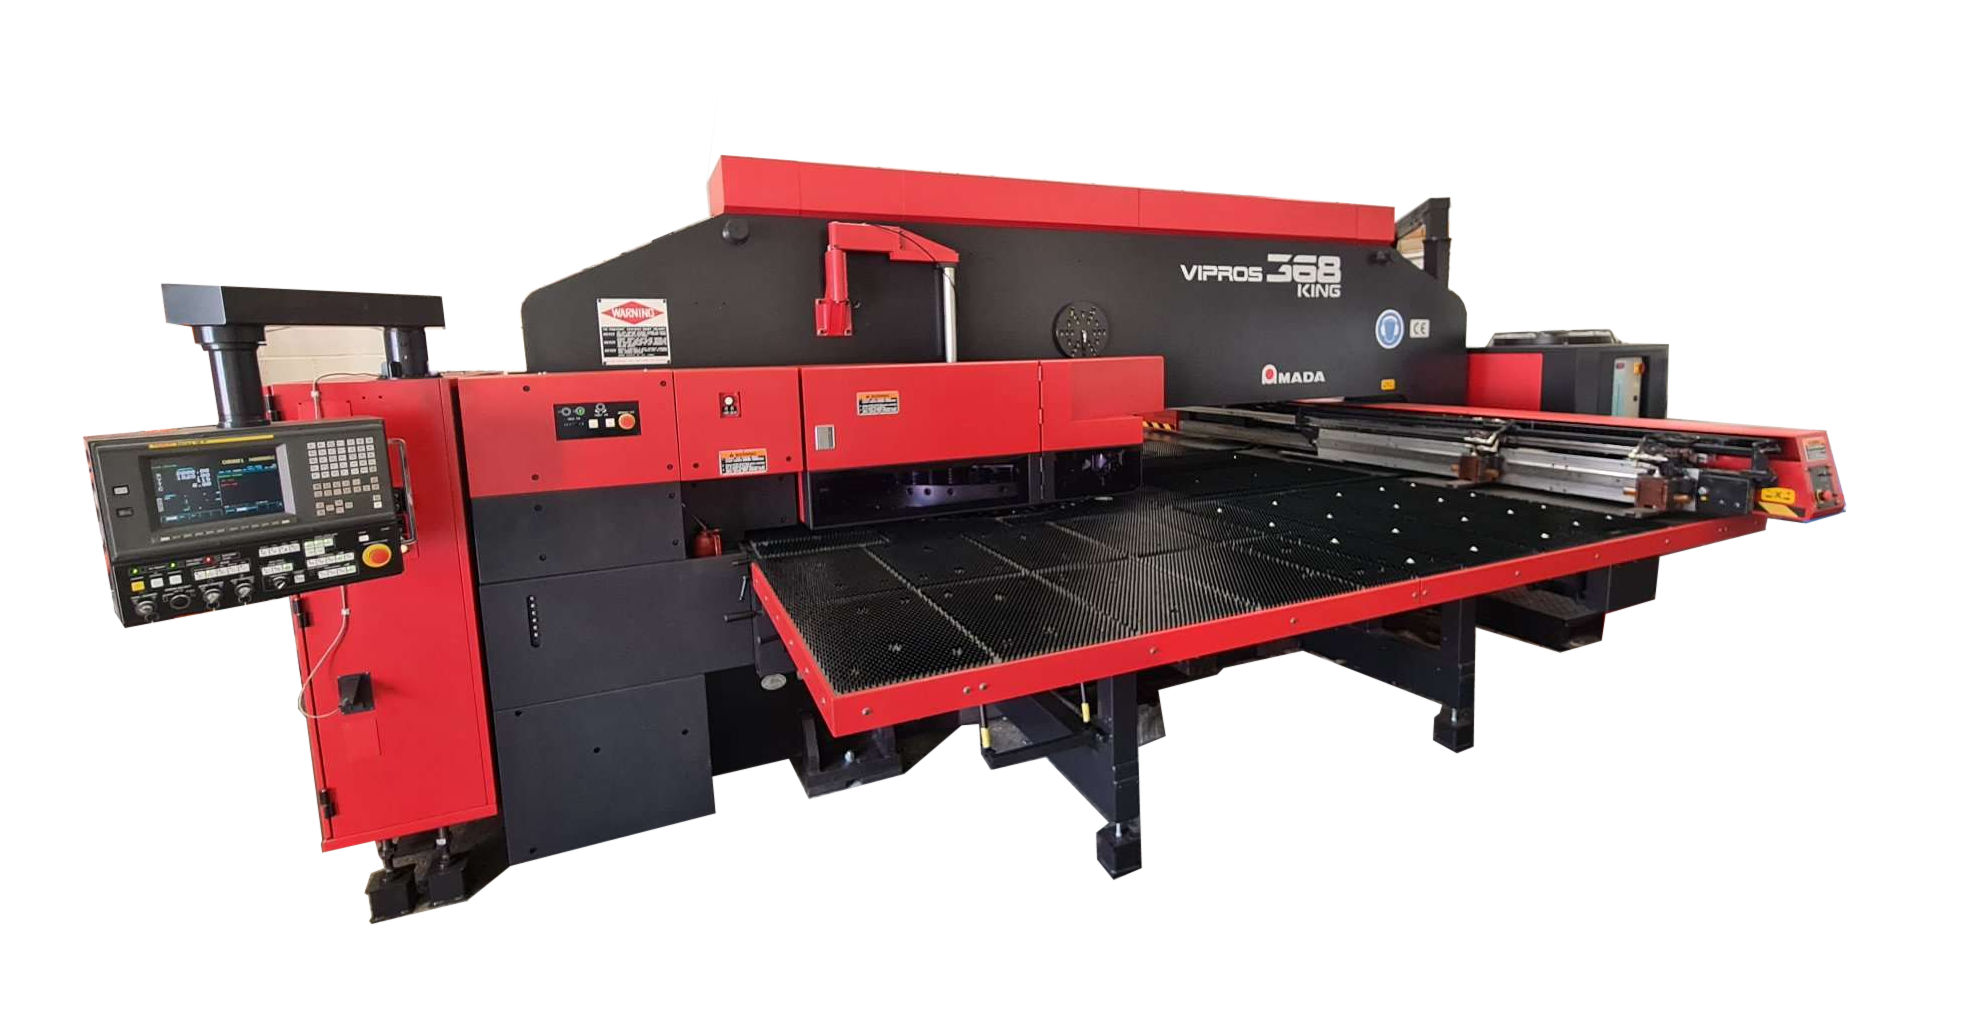 Amada Vipros 368 King - High Speed turret punch press picture Ad-tek